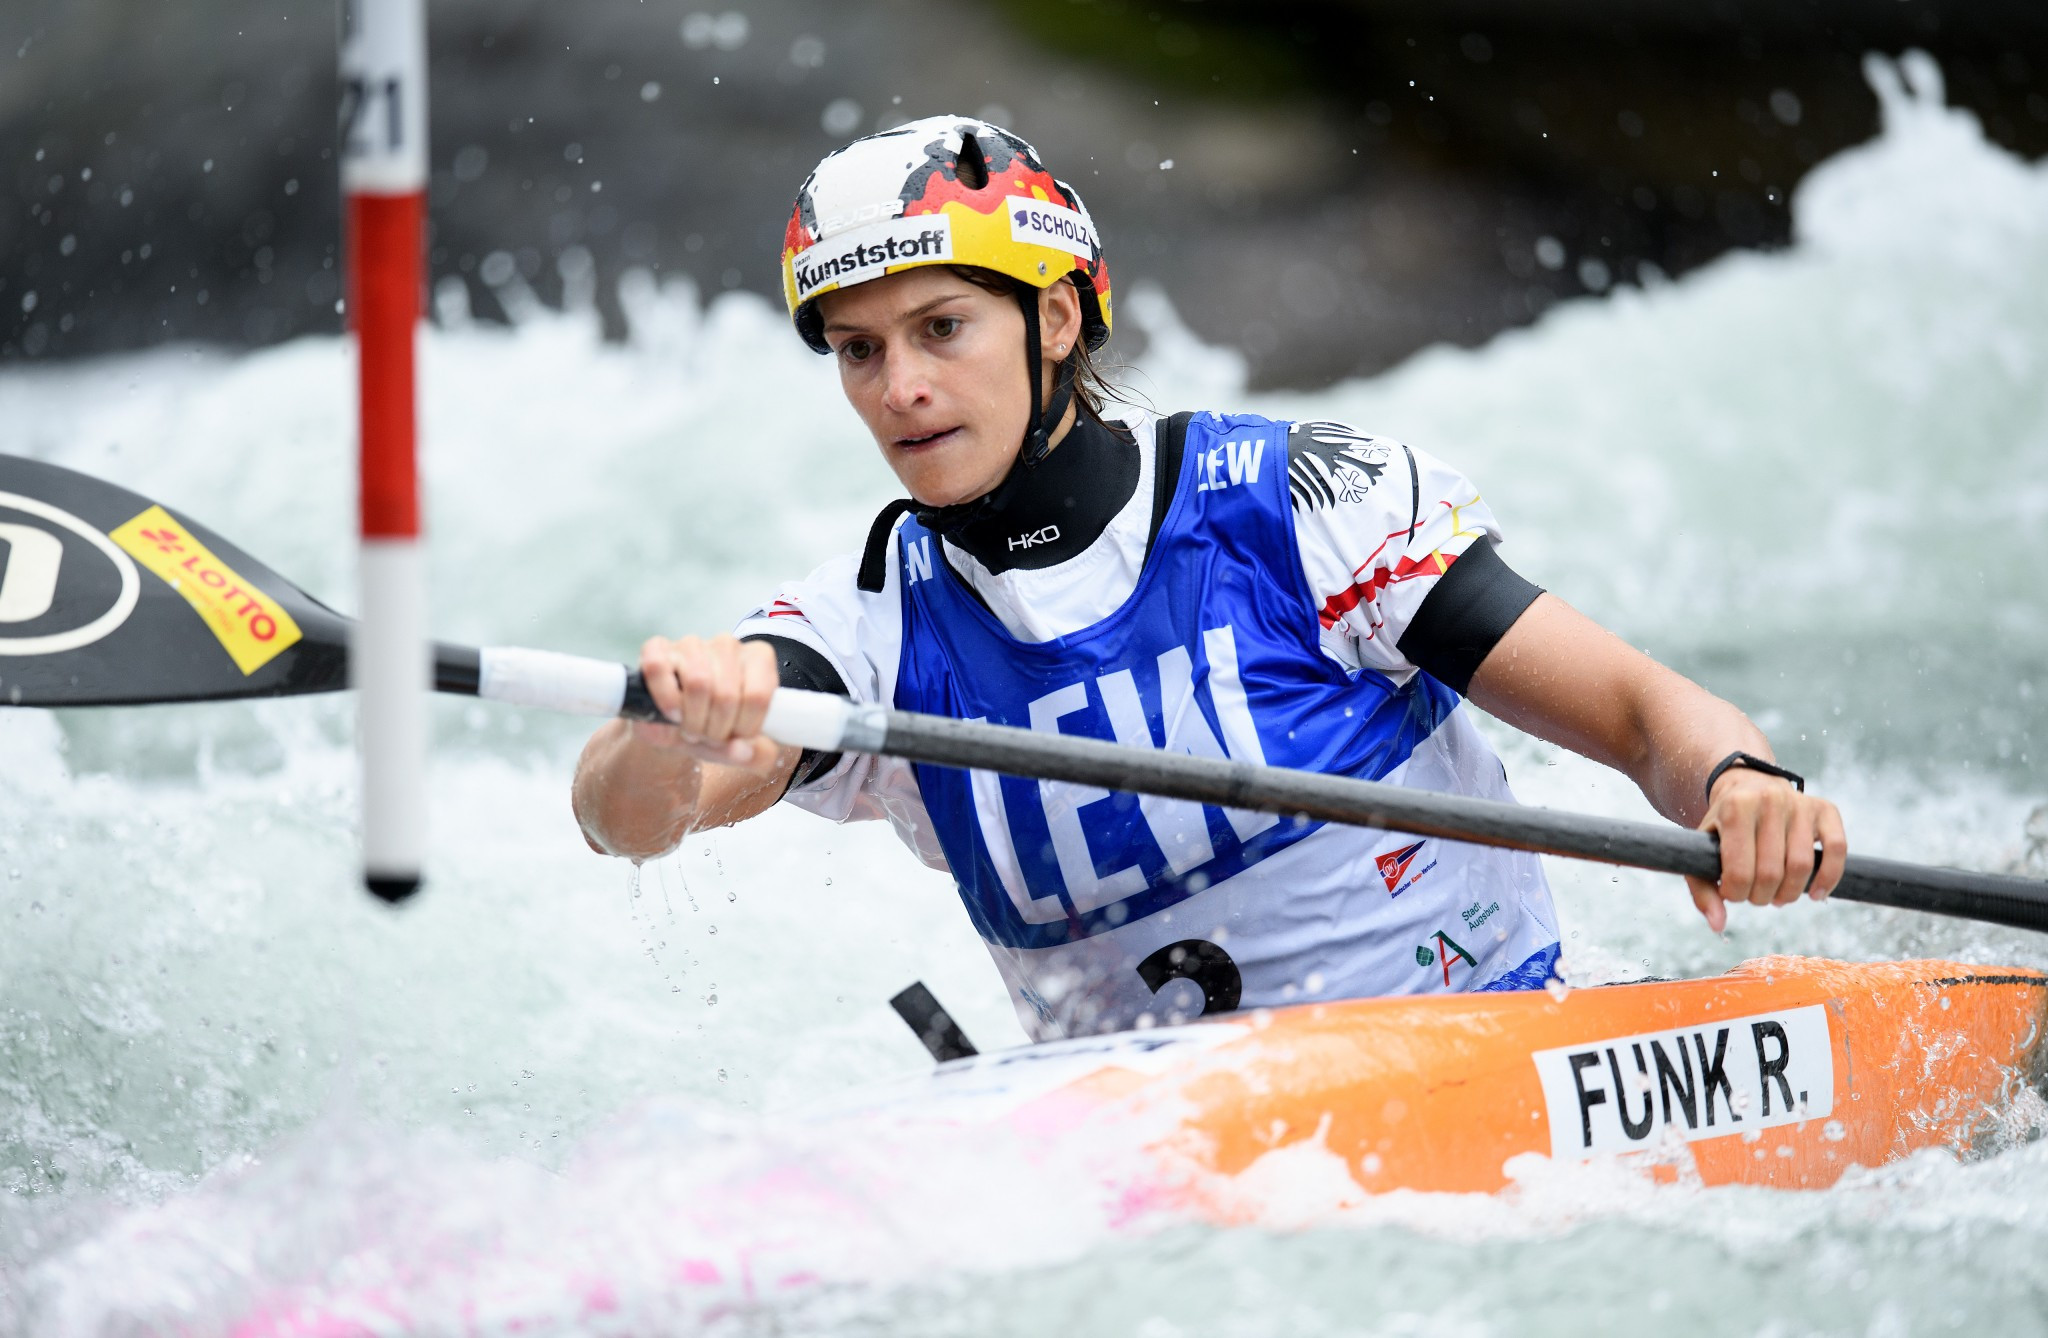 Funk and Tasiadis secure overall titles as Canoe Slalom World Cup season concludes in Barcelona